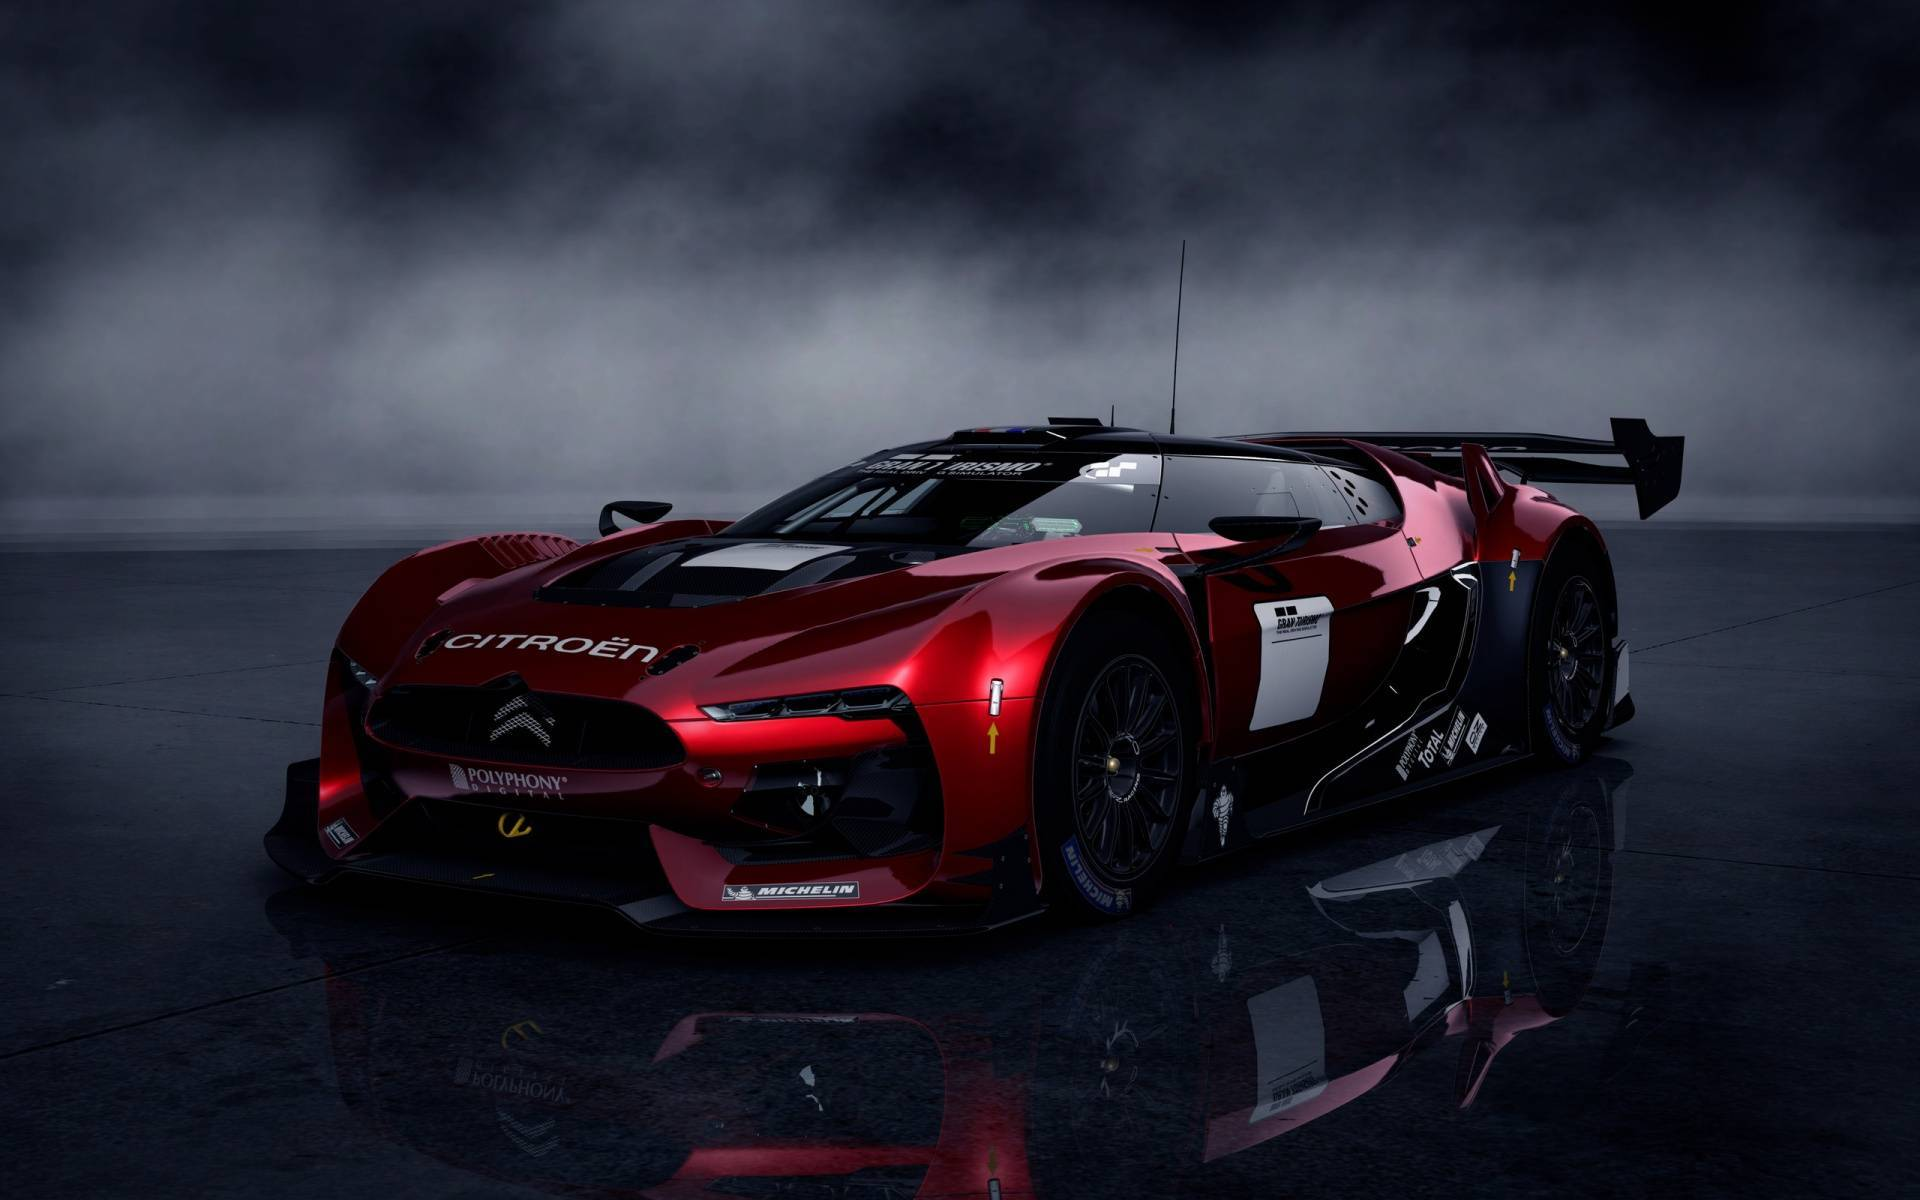 Sports Car Wallpapers Top Free Sports Car Backgrounds Wallpaperaccess